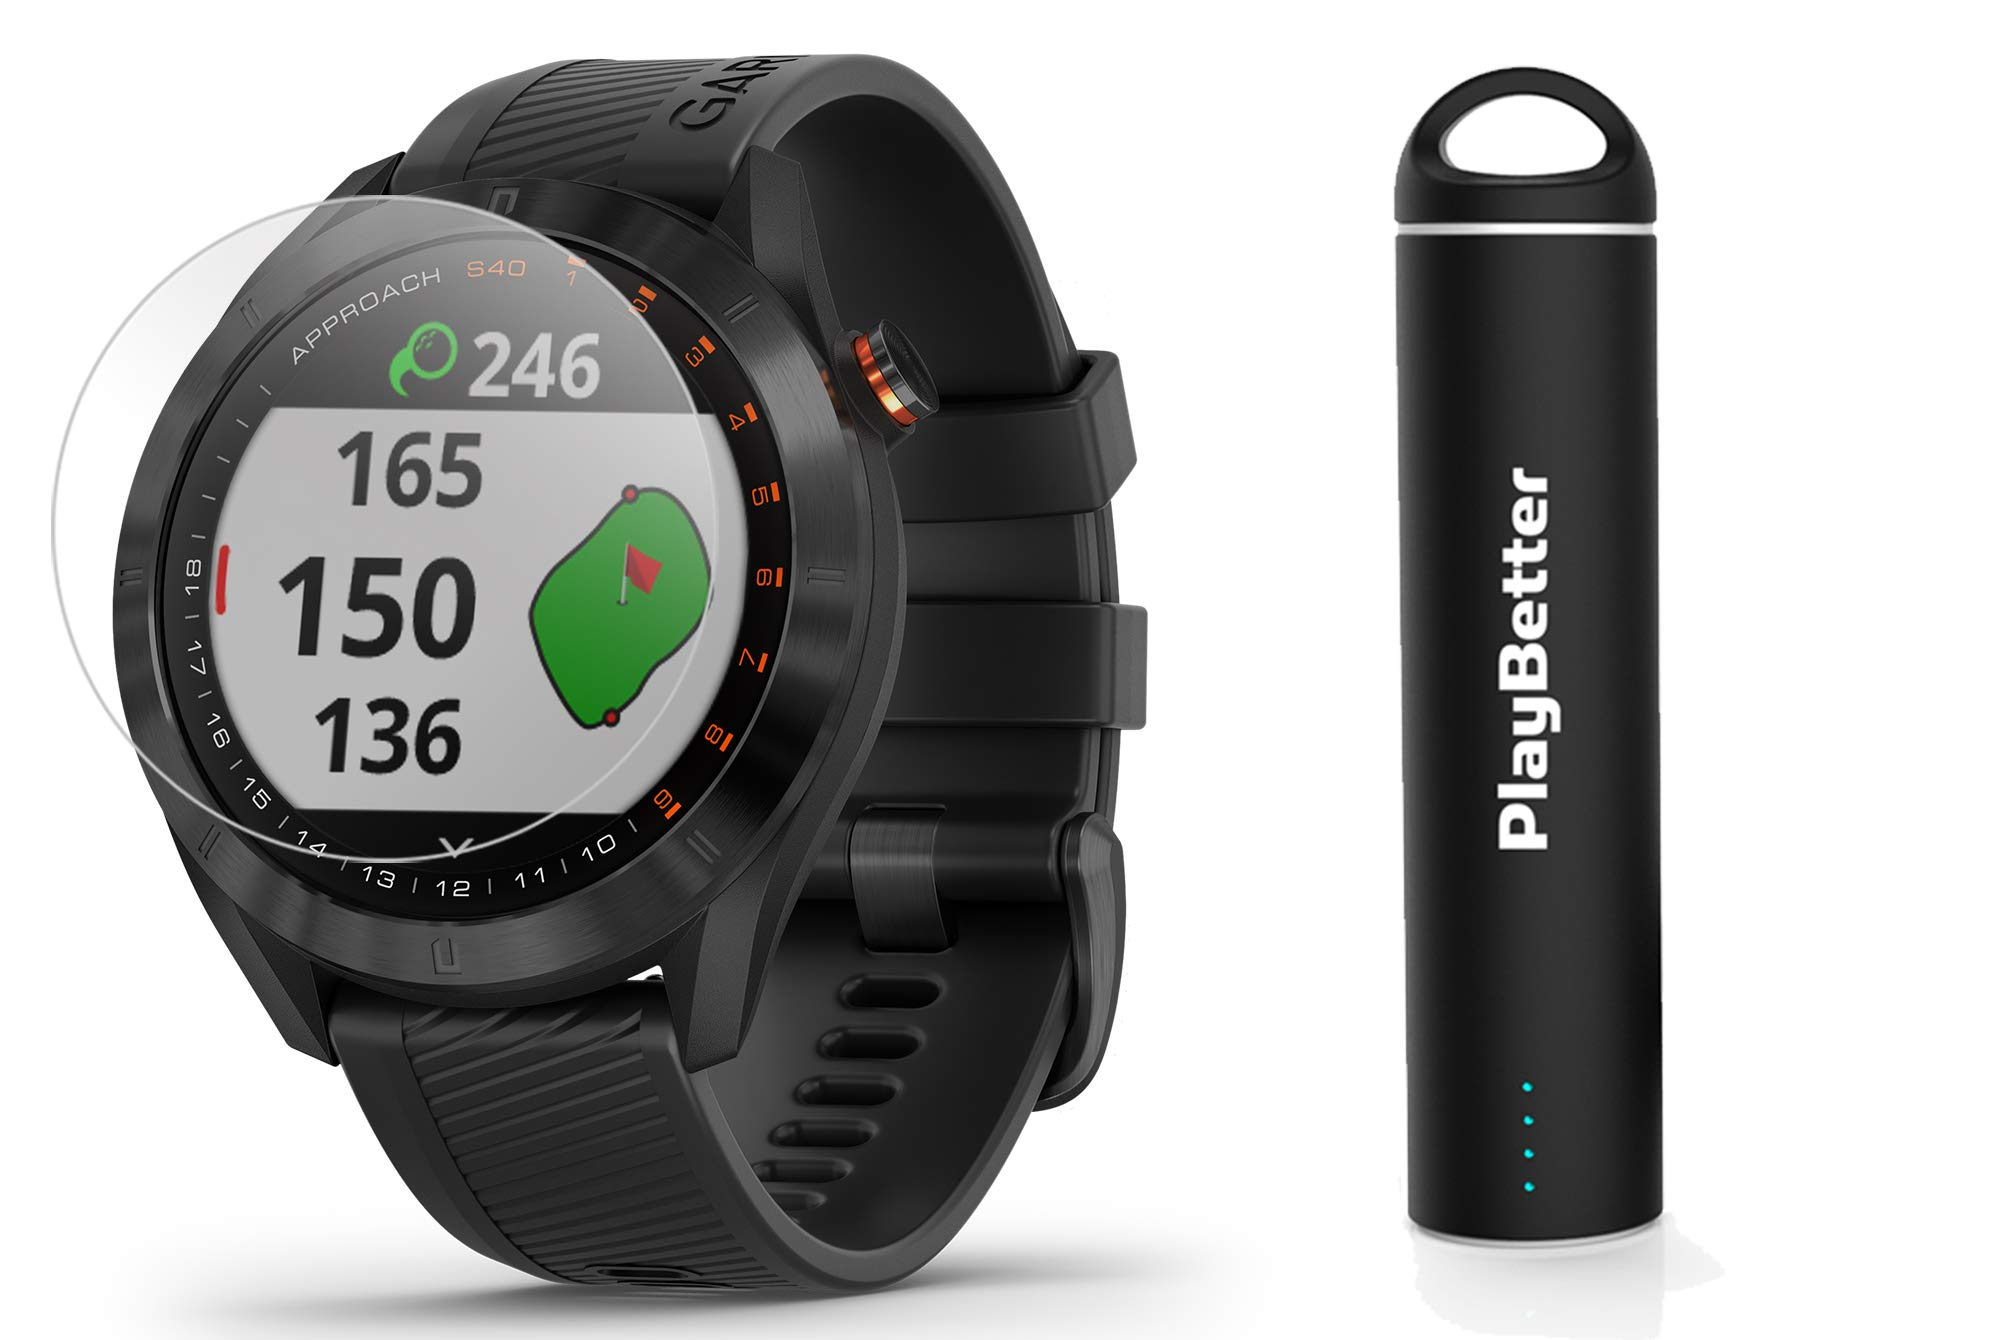 Garmin Approach S40 (Black) Golf GPS Smartwatch Bundle   Includes PlayBetter Portable Charger (2200mAh) & HD Screen Protectors   Stylish, Color Touchscreen, 41,000+ Courses   010-02140-01